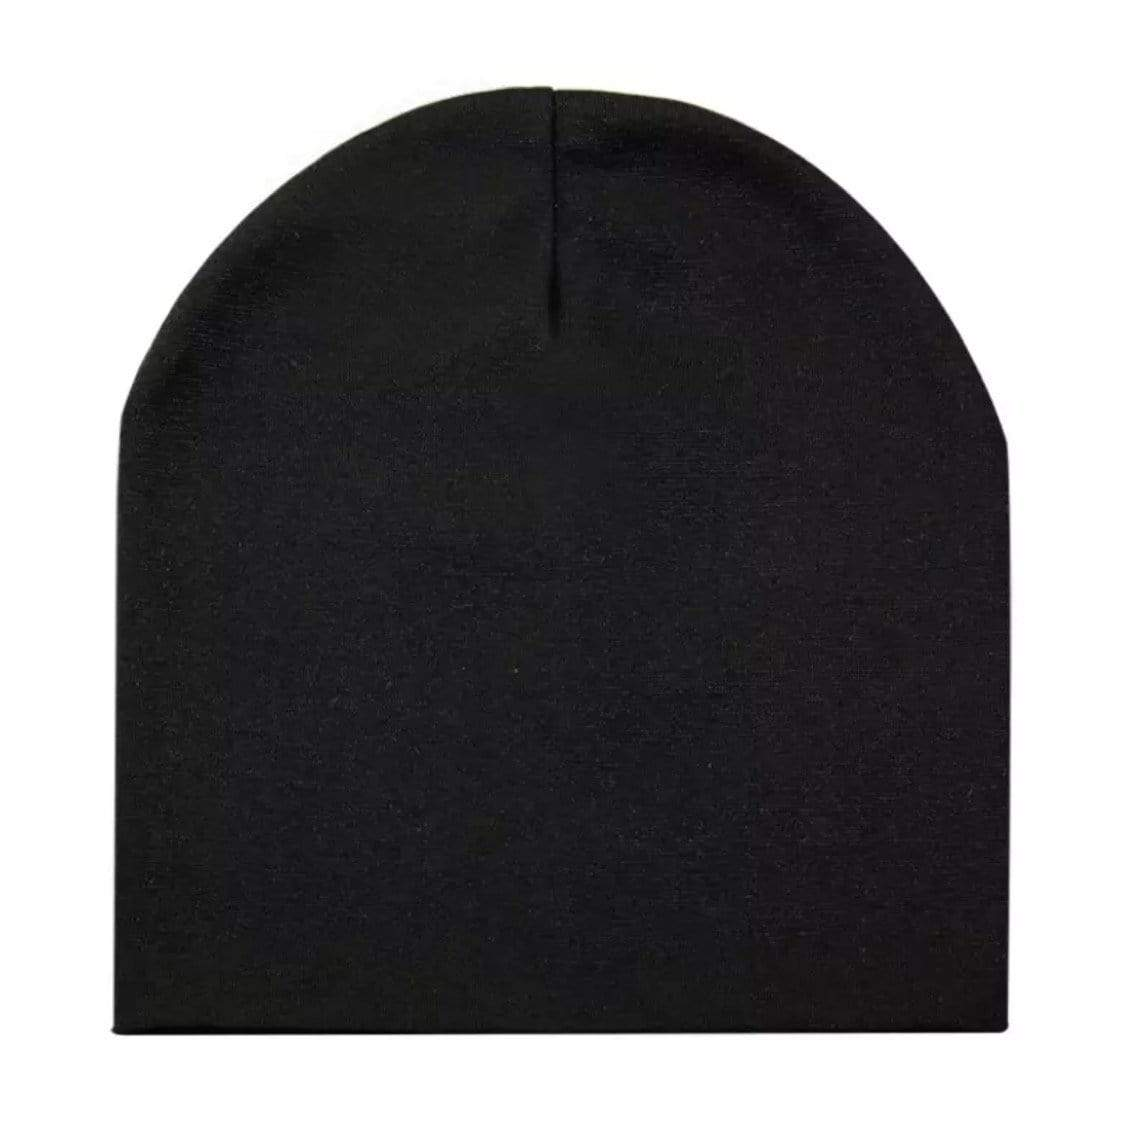 Tiny Black Beanie Hat Hats Tiny Trendsetter Small (6 Months - 2 Years)